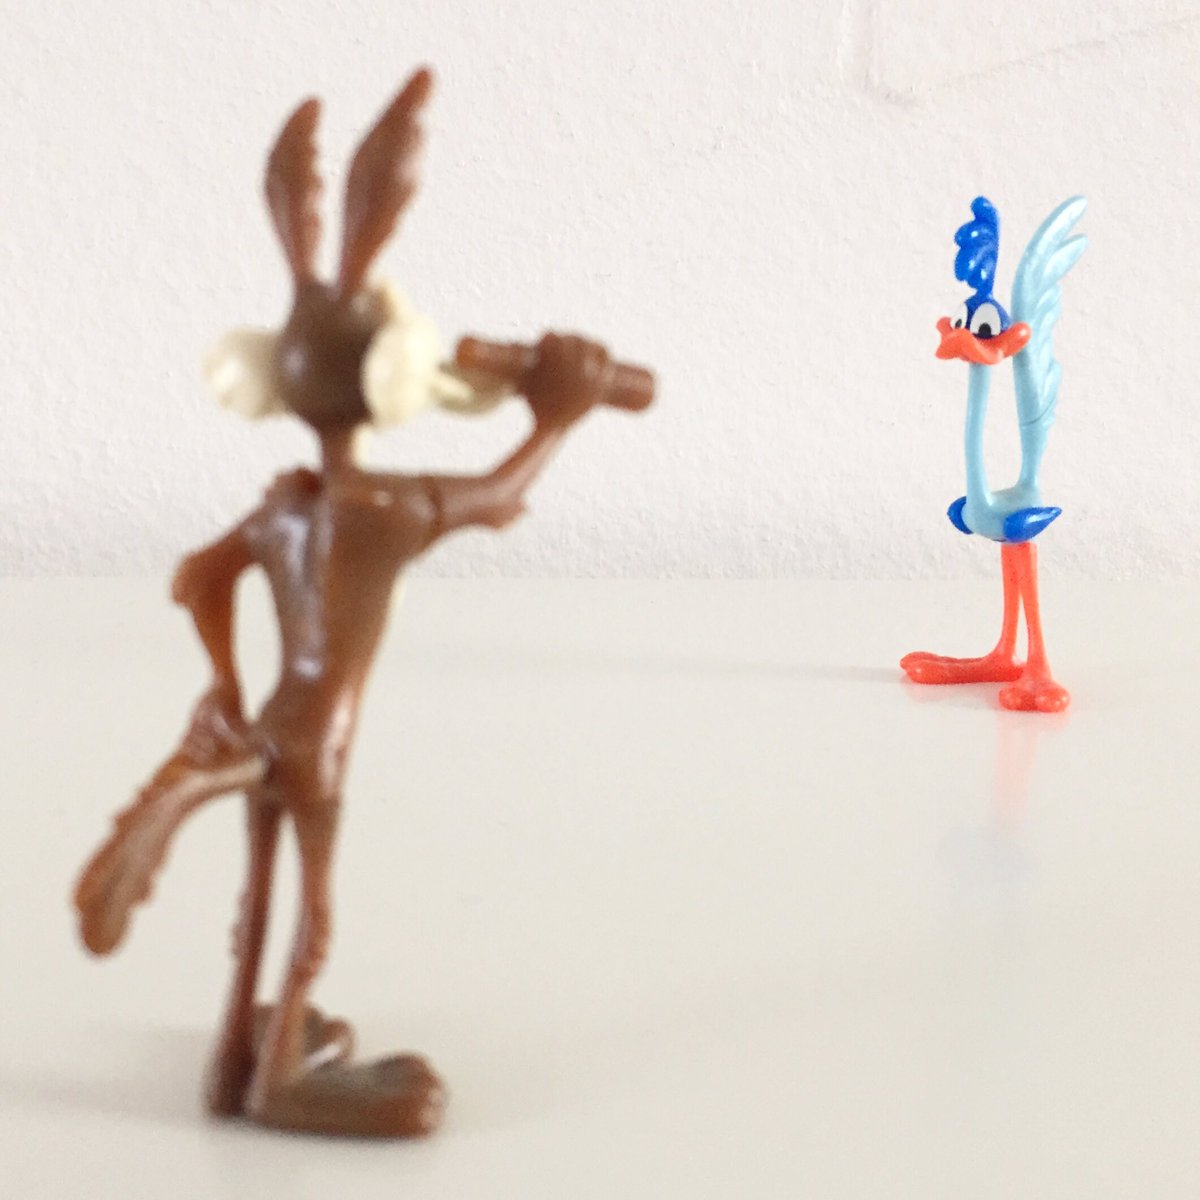 You can't always get what you want... #kindersurprise #surpriseegg #surpriseeggs #kinderegg #90stoys #kindereggs #kindersurpriseegg #toysfromthe90s #figurine #figurines #actionfigures #cartooncharacters #toys #wilecoyote #roadrunner #warnerbros #looneytunes #looneytoons